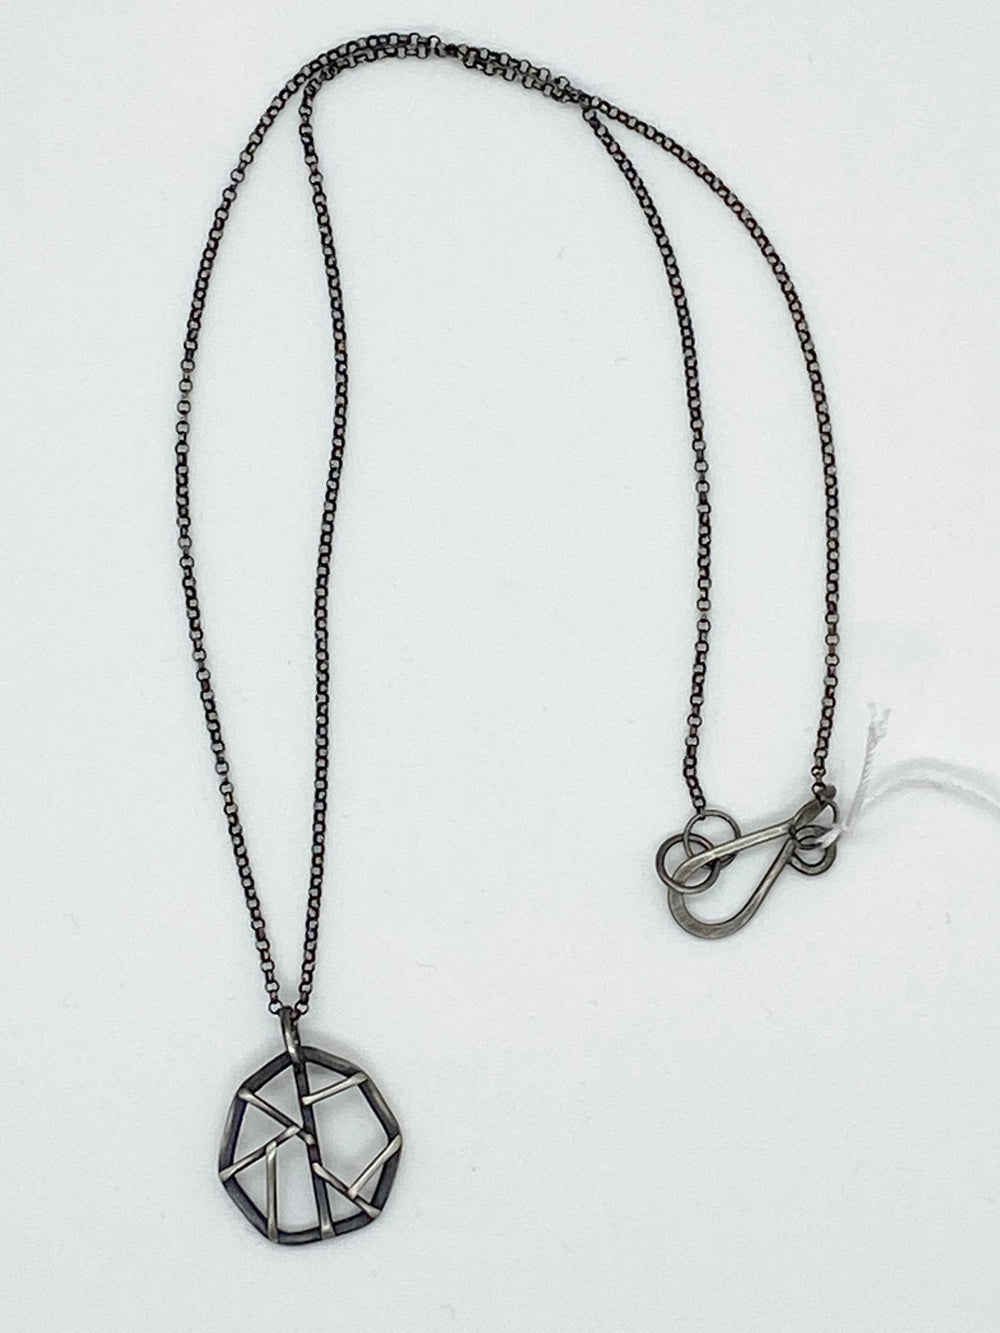 Erin Austin necklace, #165x Fractured pendant